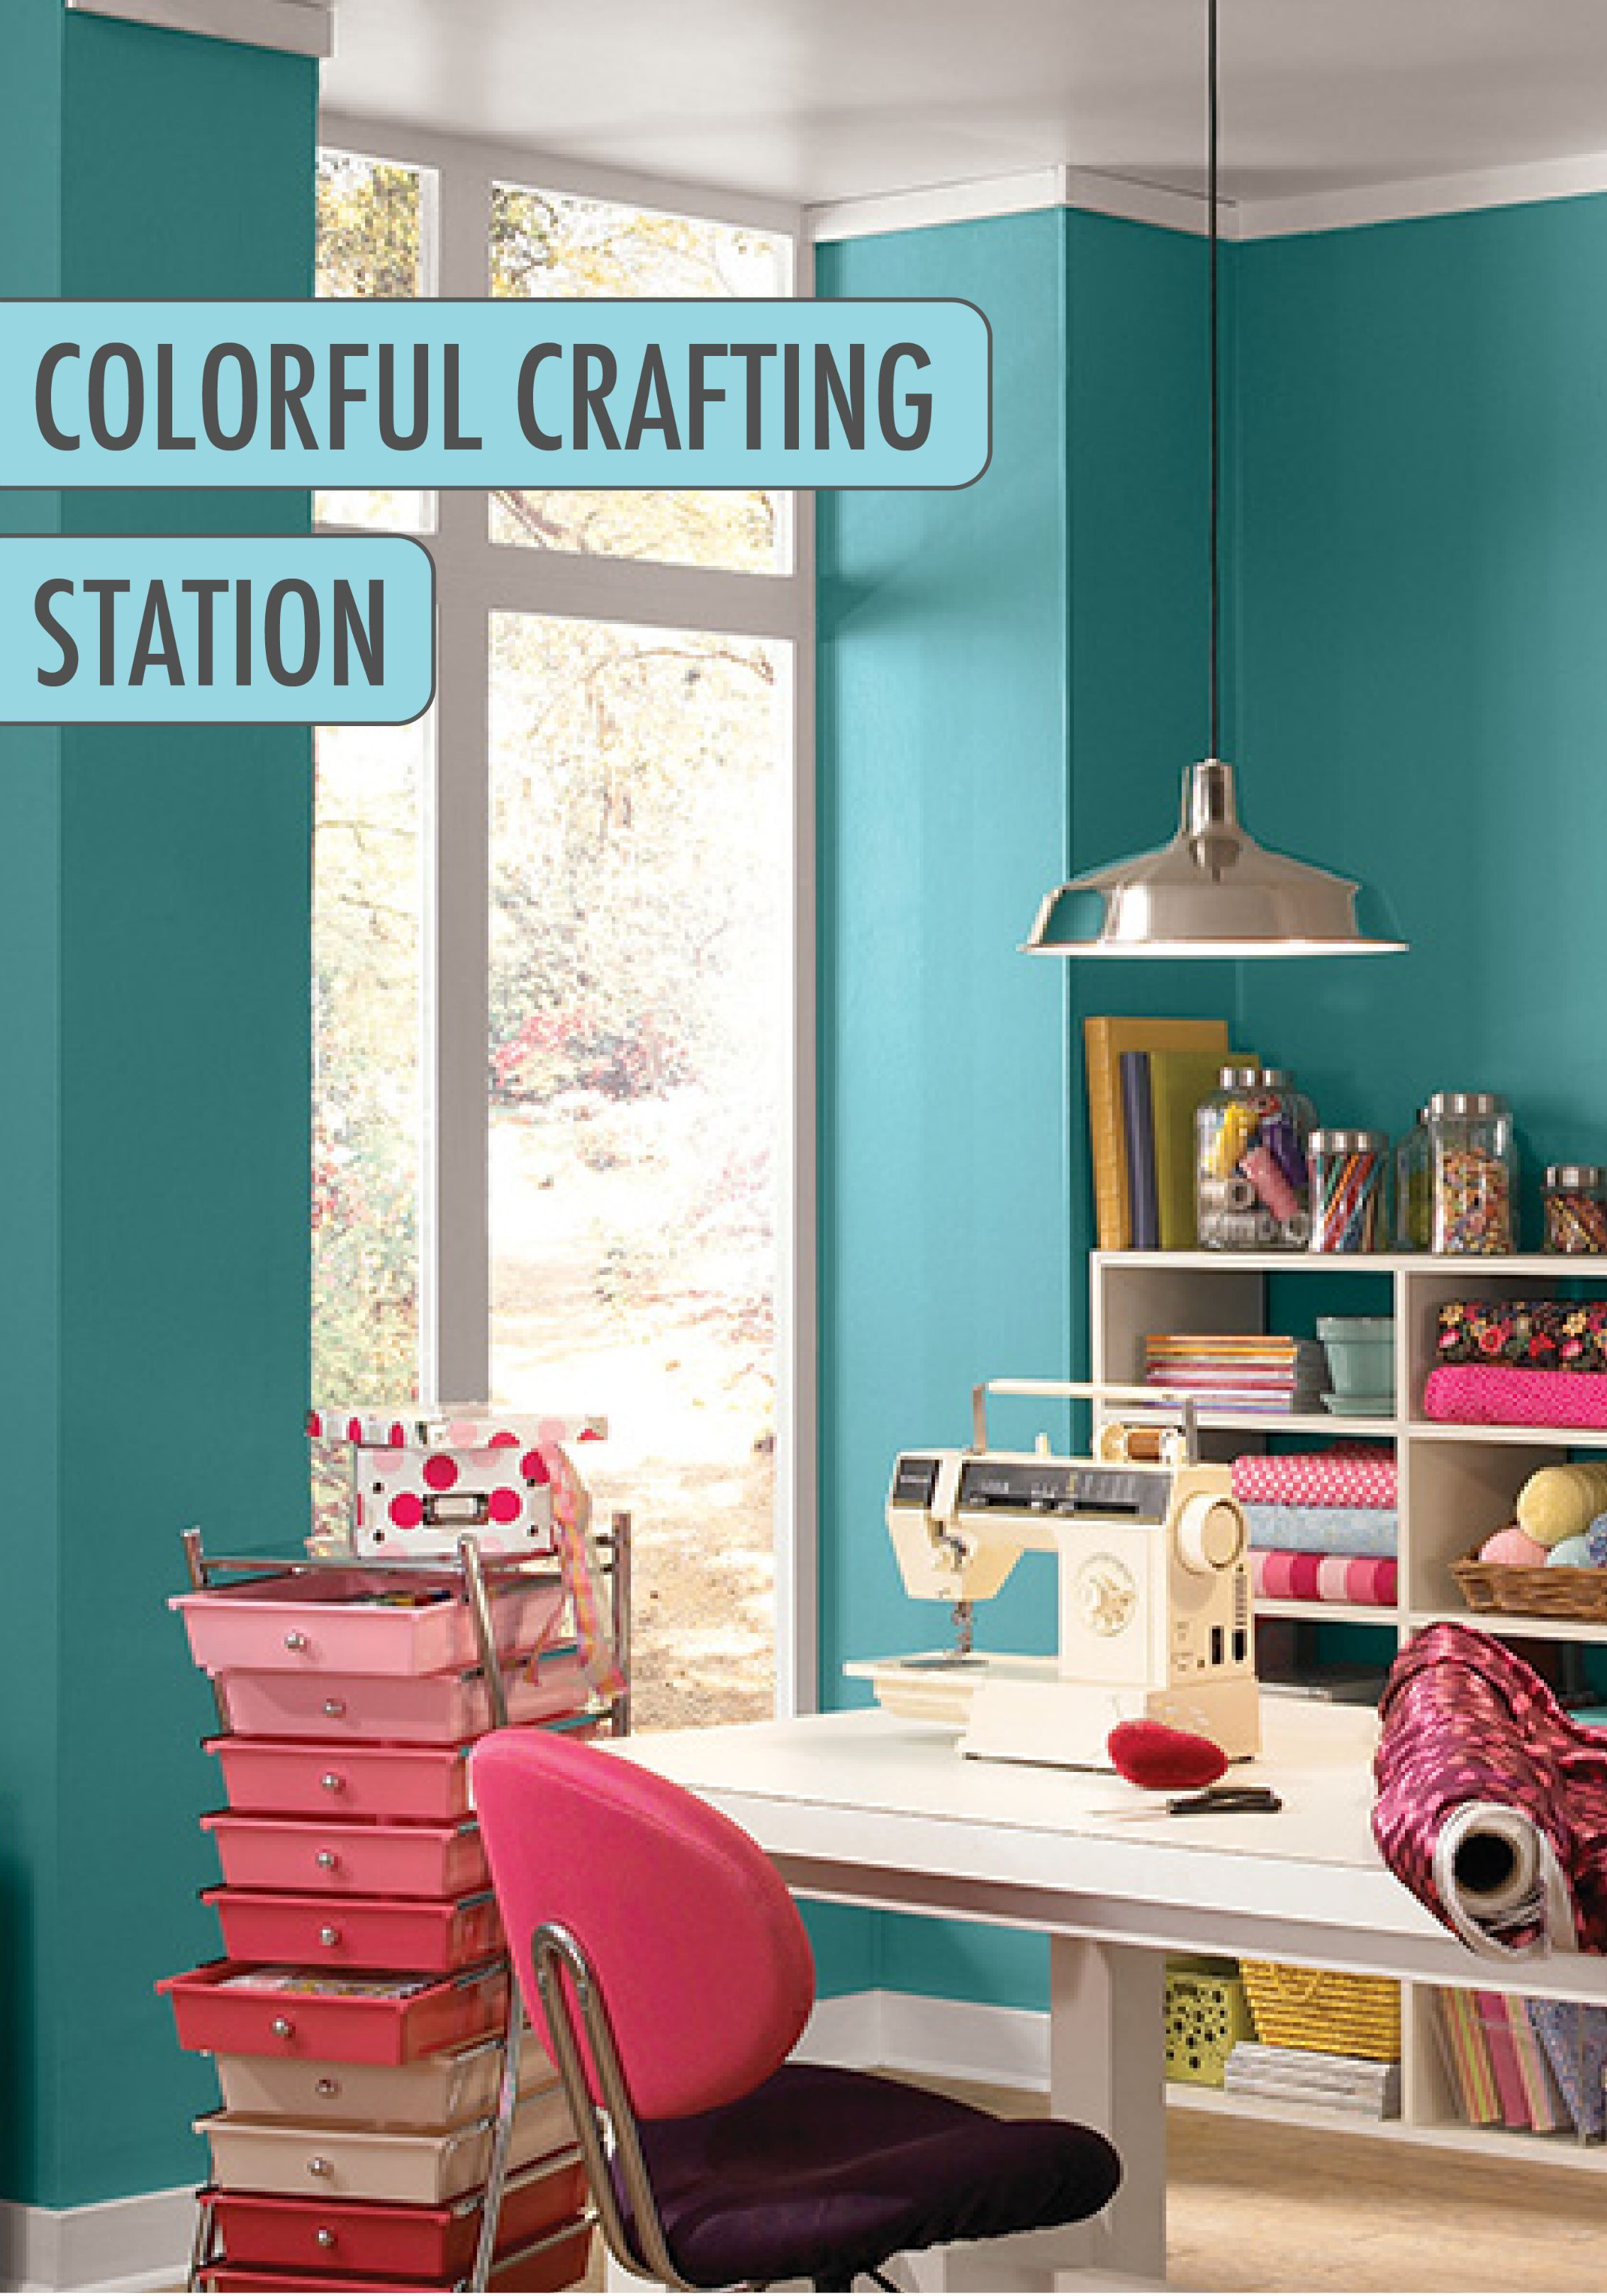 Teal Paint Colors Everyone Needs An Uplifting Paint Color In Their Office Or